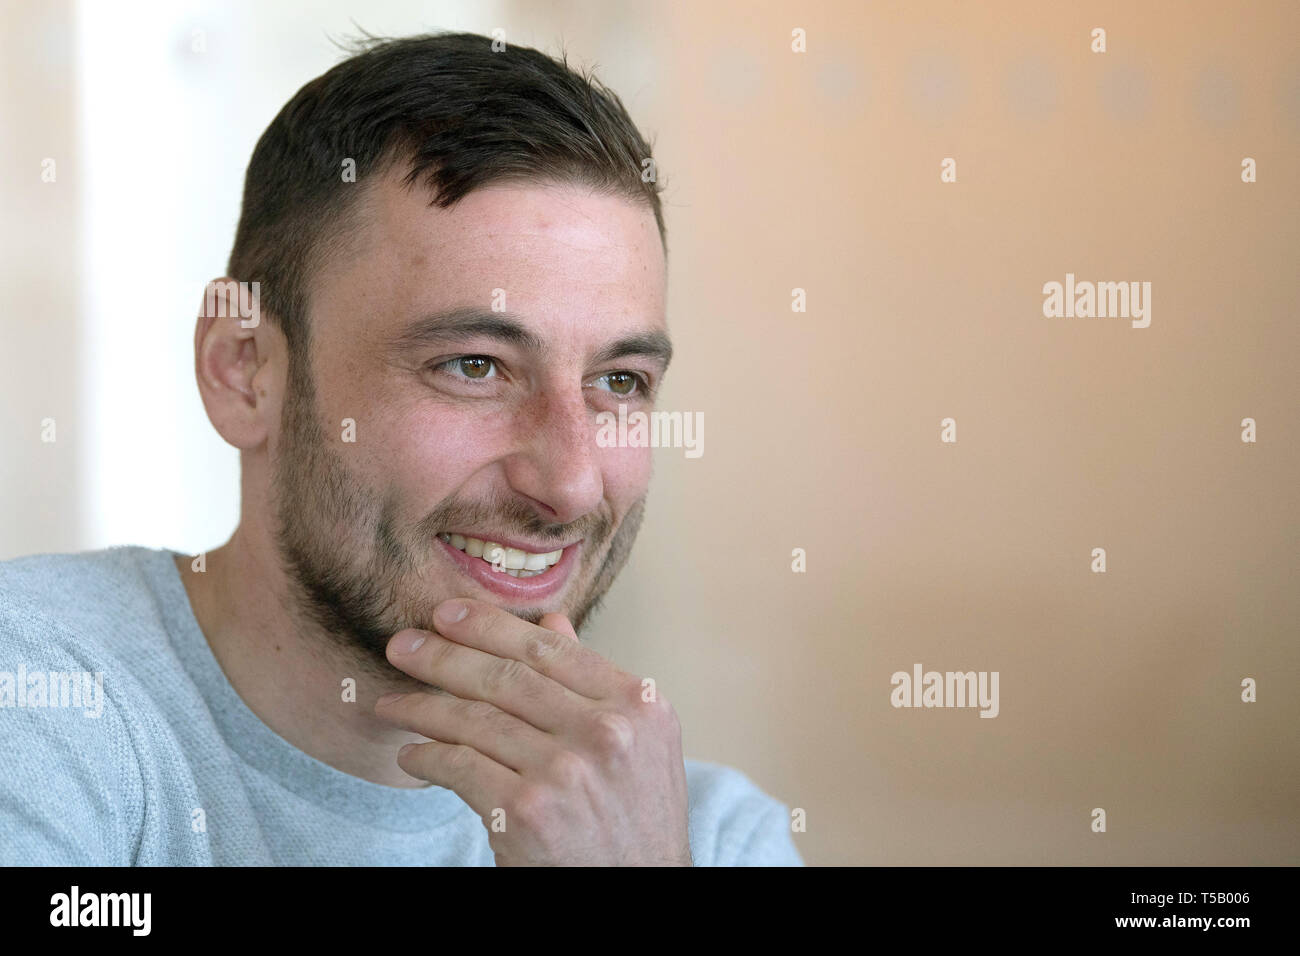 "16 April 2019, North Rhine-Westphalia, Düsseldorf: Alexander Scheelen, regional league soccer player from Rot-Weiß Oberhausen, talks to editors in the DPA editorial office. The man from Oberhausen received a shock diagnosis of lymph gland cancer a year ago. Today, the 31-year-old is back on the pitch after having survived illness, even scored an important goal and hopes to be promoted to the third league with RWO. (to dpa ""Alexander Scheelen: ""I had put the subject of football aside"""") Photo: Federico Gambarini/dpa Stock Photo"